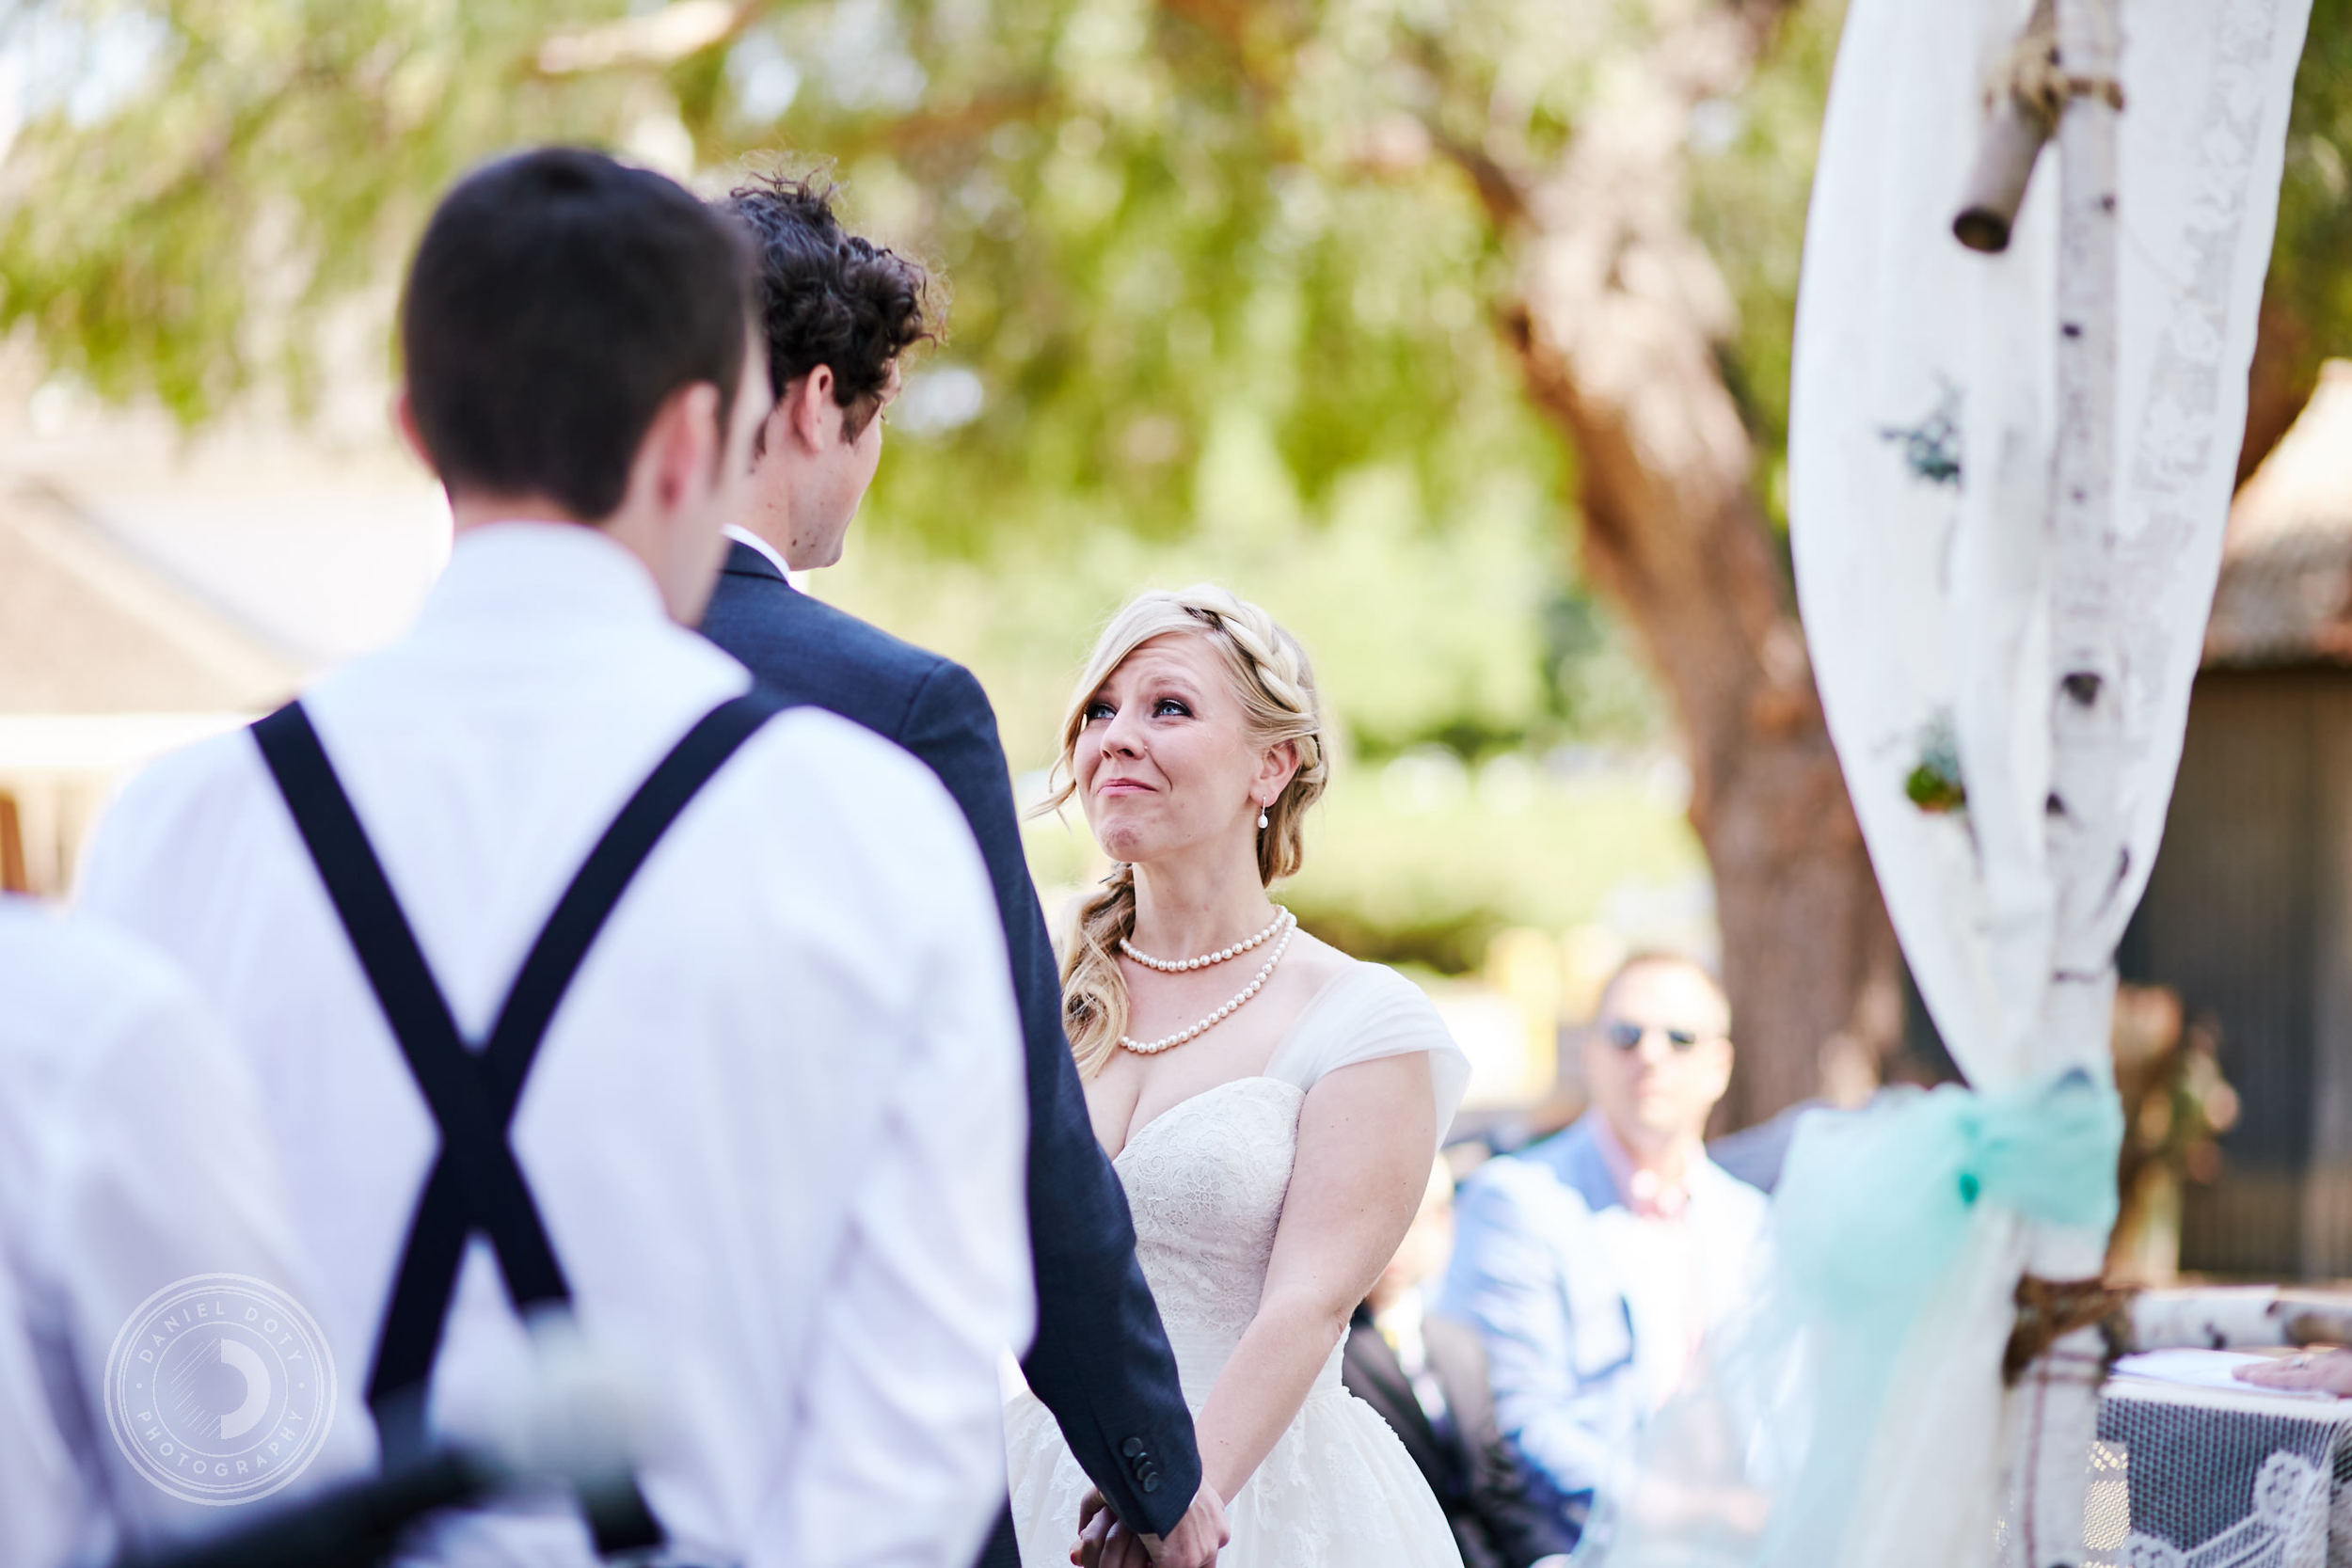 Daniel Doty Photography Erin Colin SoCal Wedding Photographer Strathearn 135.jpg